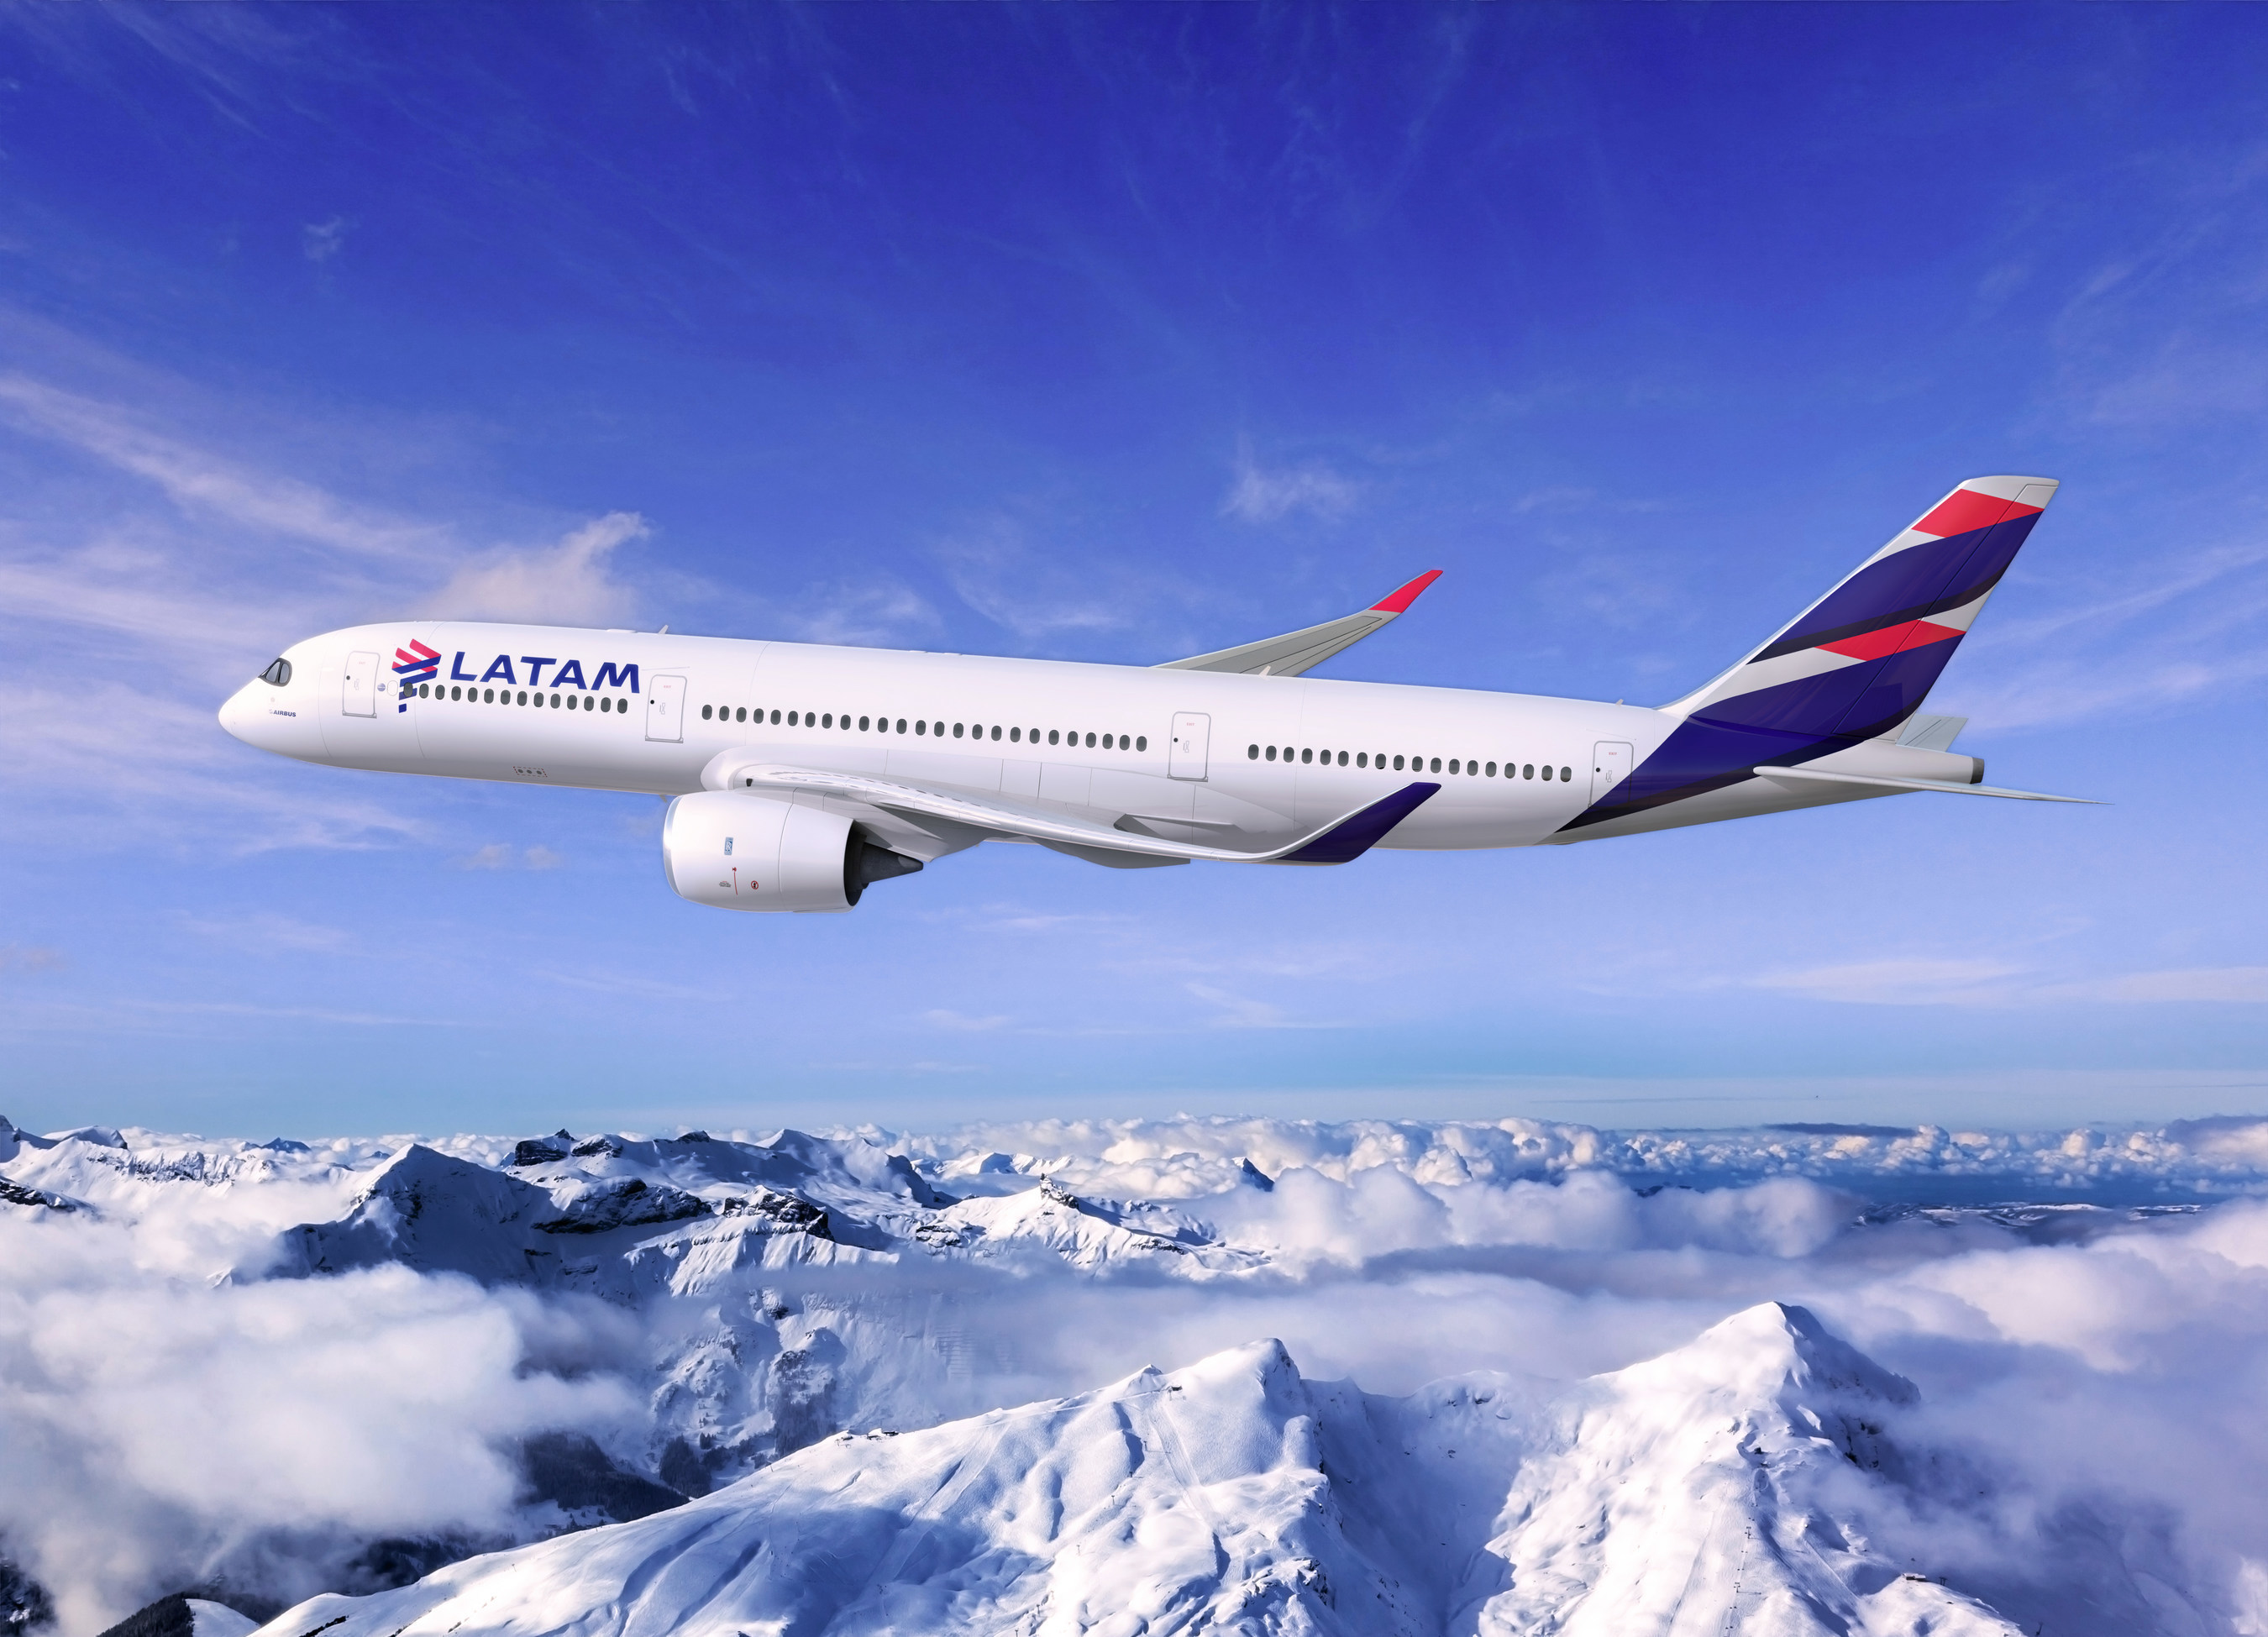 LATAM A350 over the Andes